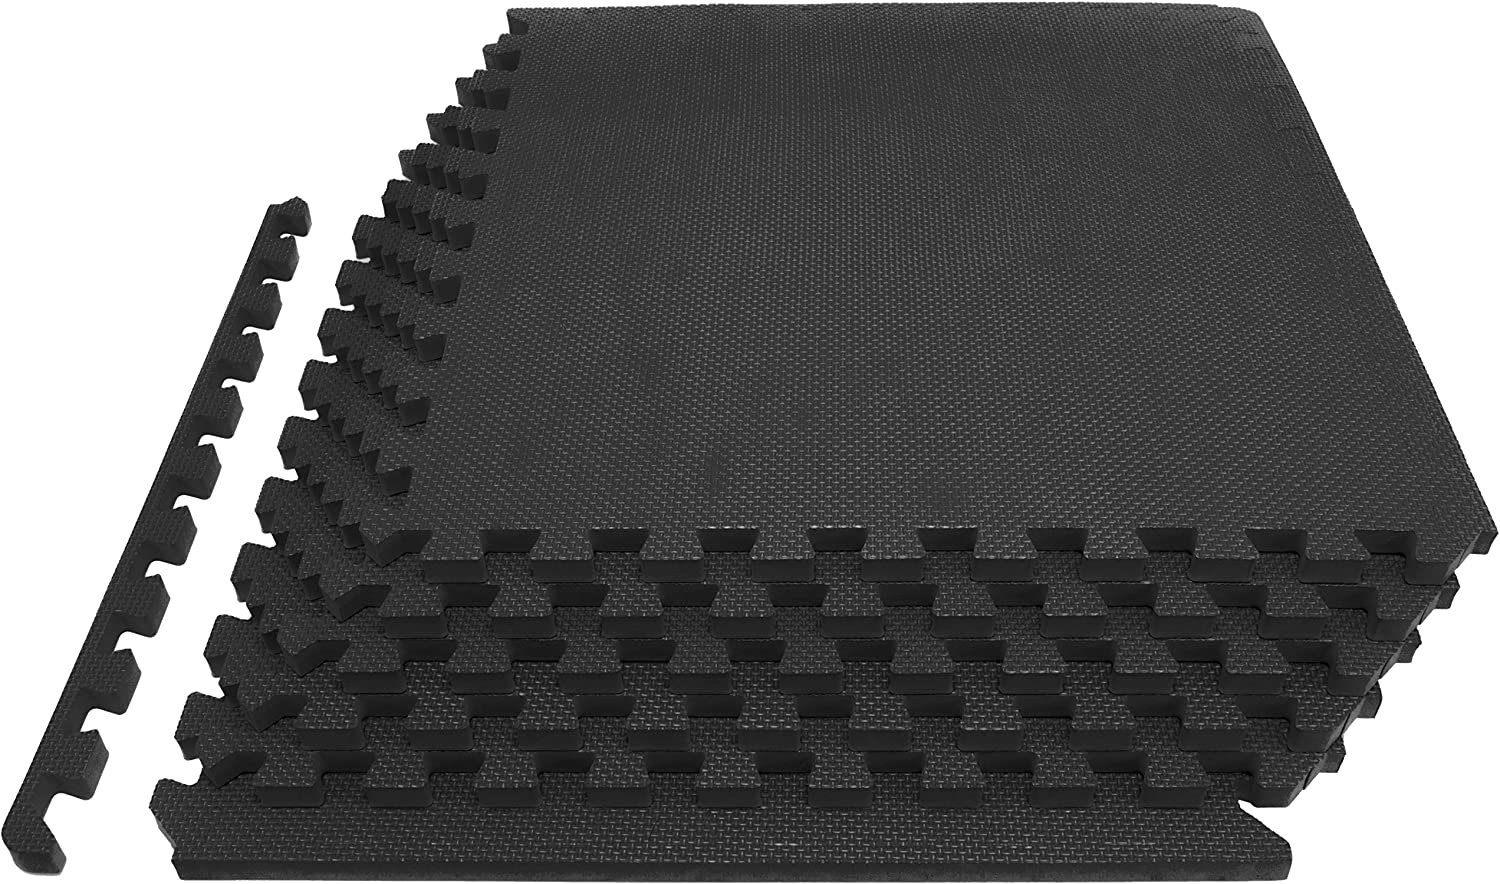 ProsourceFit Extra Thick Puzzle Exercise Mat ¾, EVA Foam Interlocking Tiles for Protective, Cushioned Workout Flooring for Home and Gym Equipment, Black : Sports & Outdoors